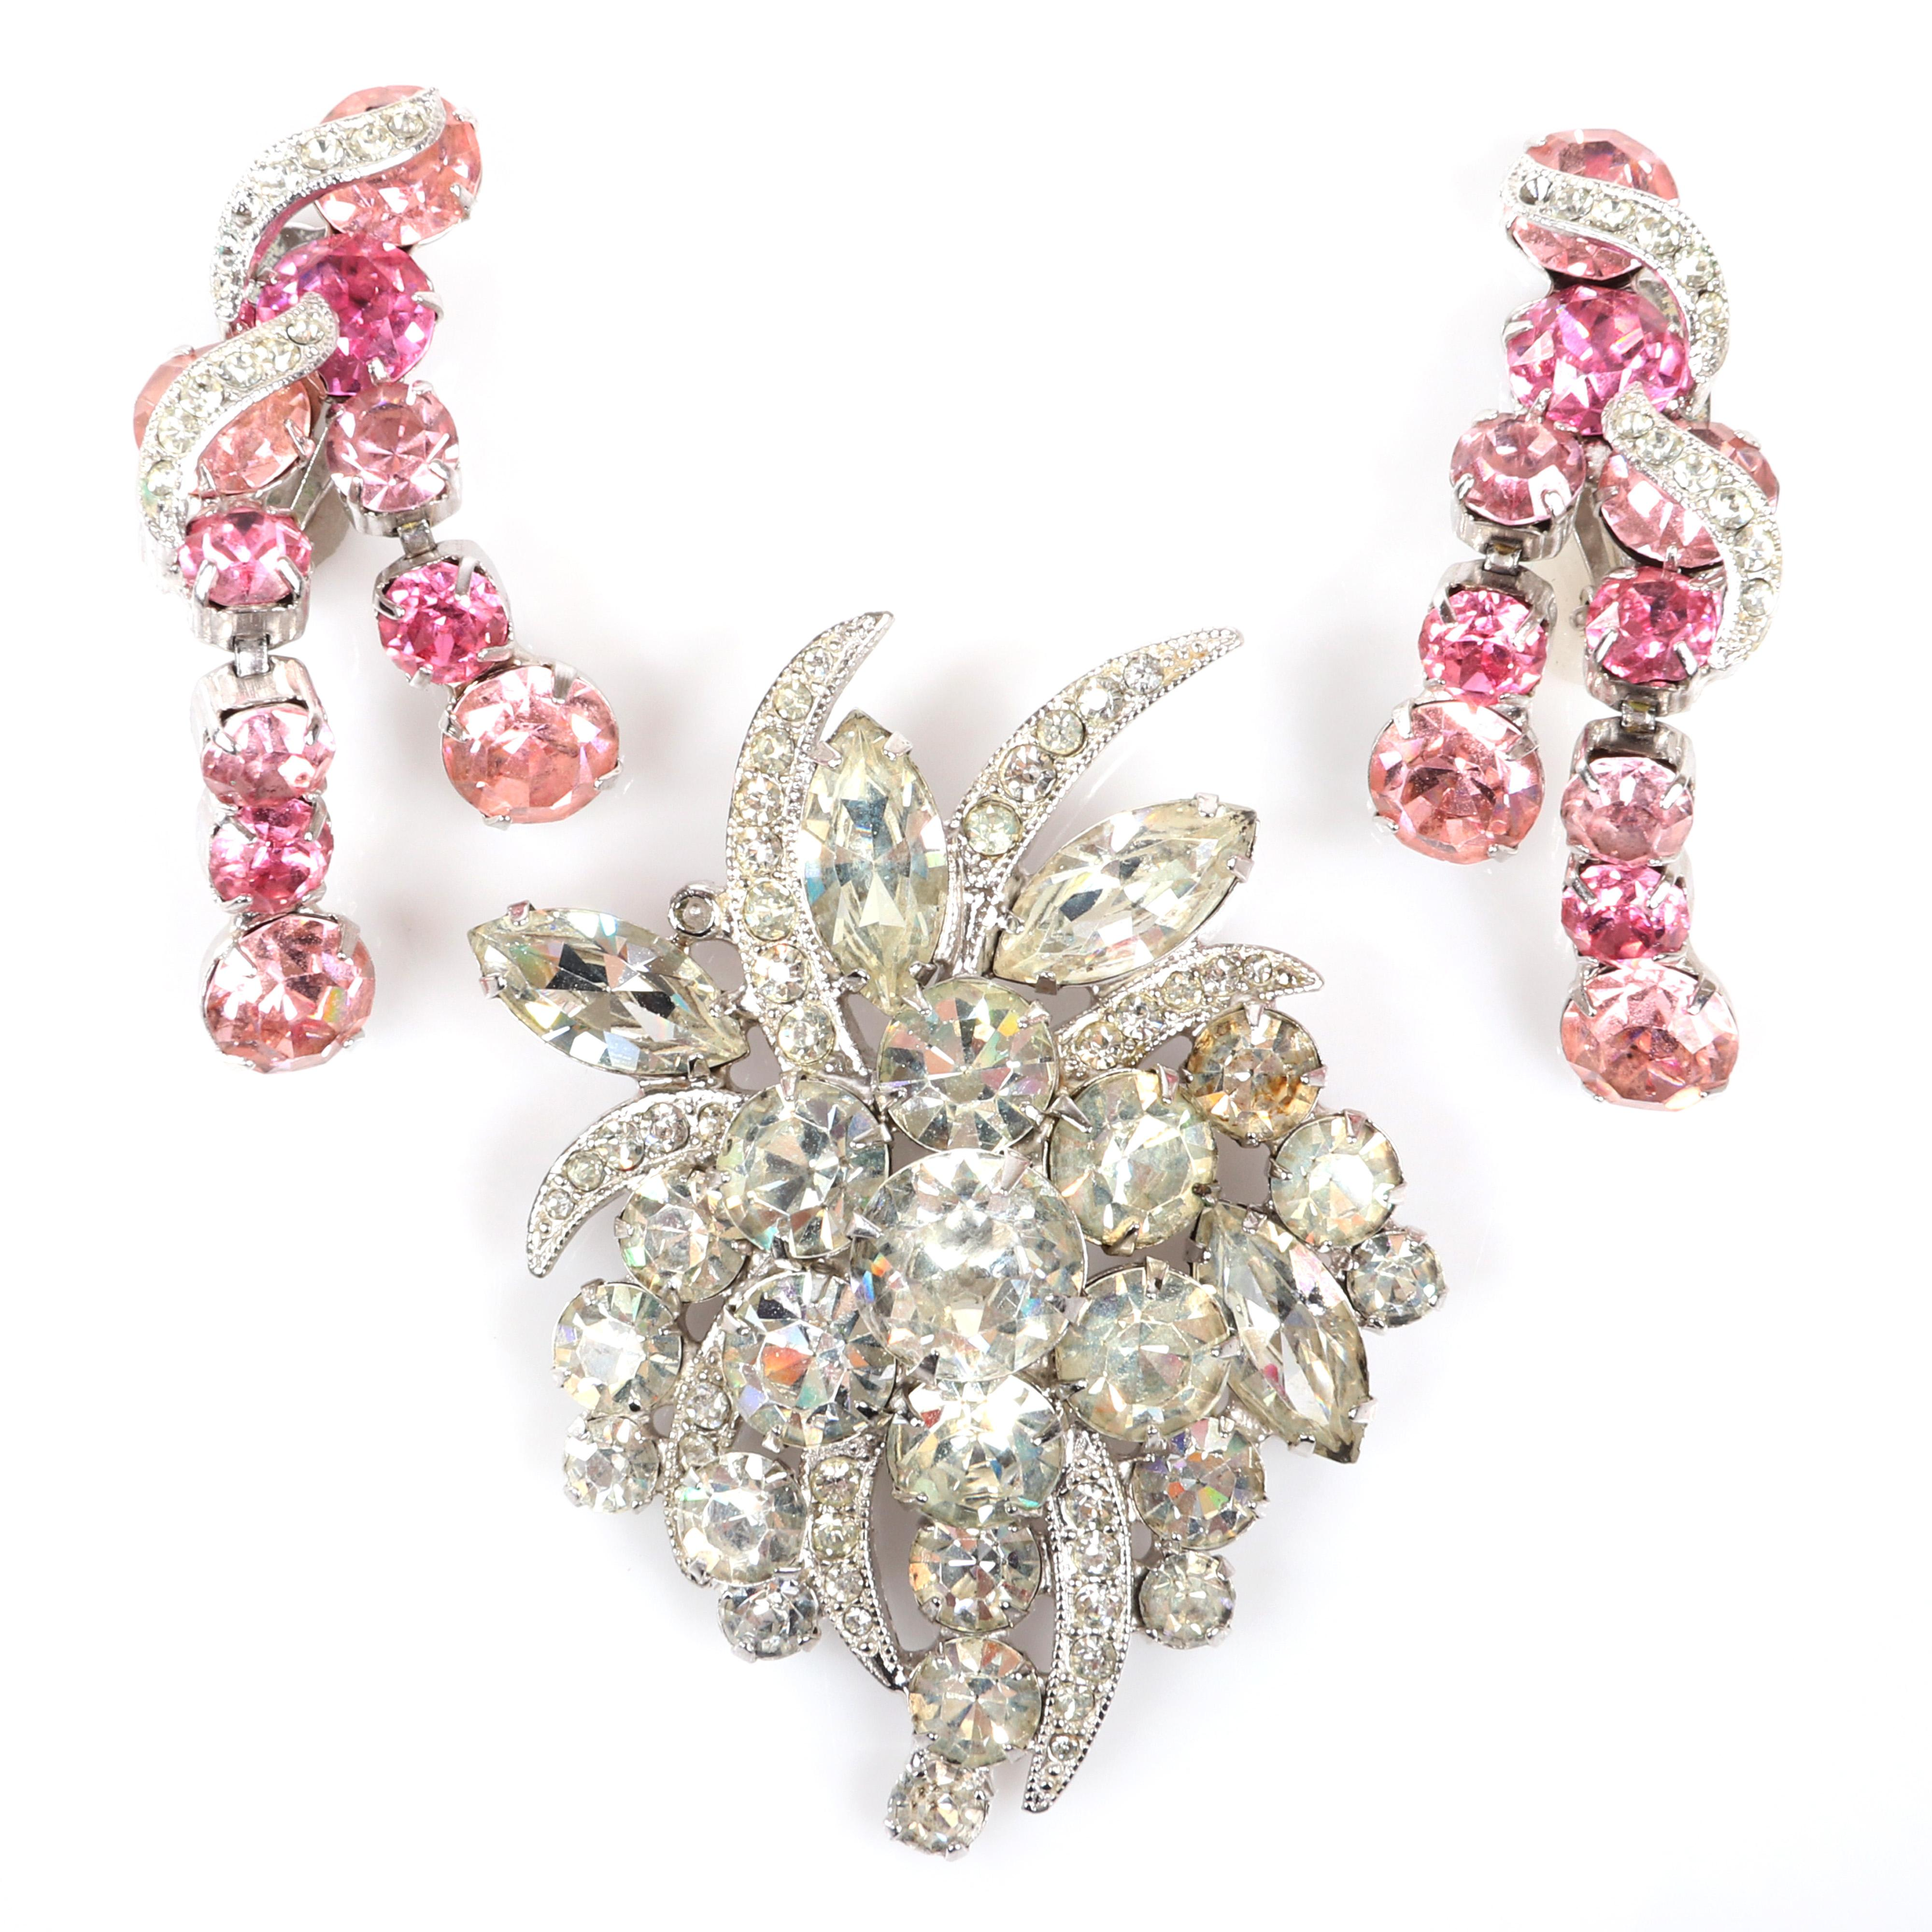 "Eisenberg Ice drop clip rhodium plated earrings with pink rhinestones and pave forming two swinging drops, paired with diamante floral brooch, c. 1950s. 2 1/8"" x 5/8"""